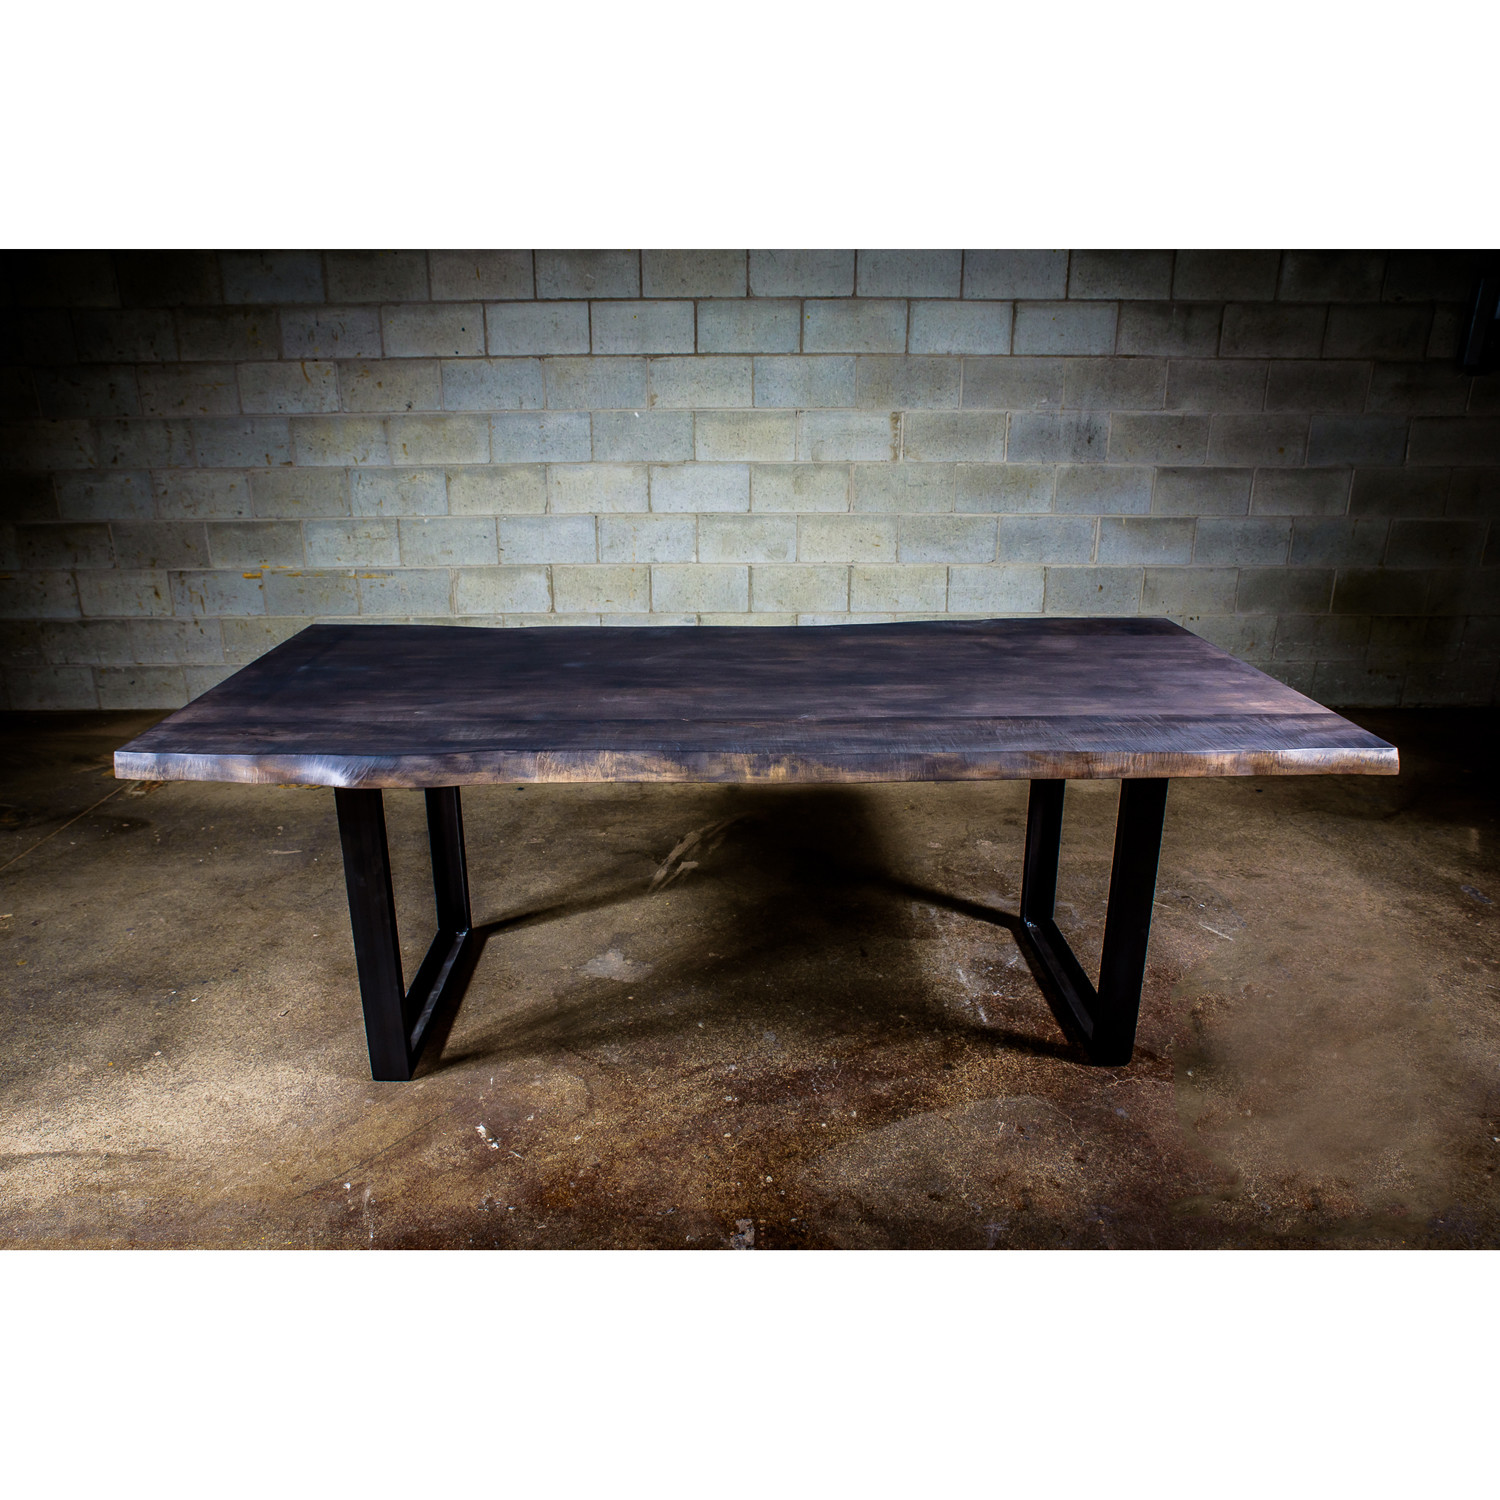 Dining table live edge maple steel legs 72 l x 38 w - Table bois metal design ...